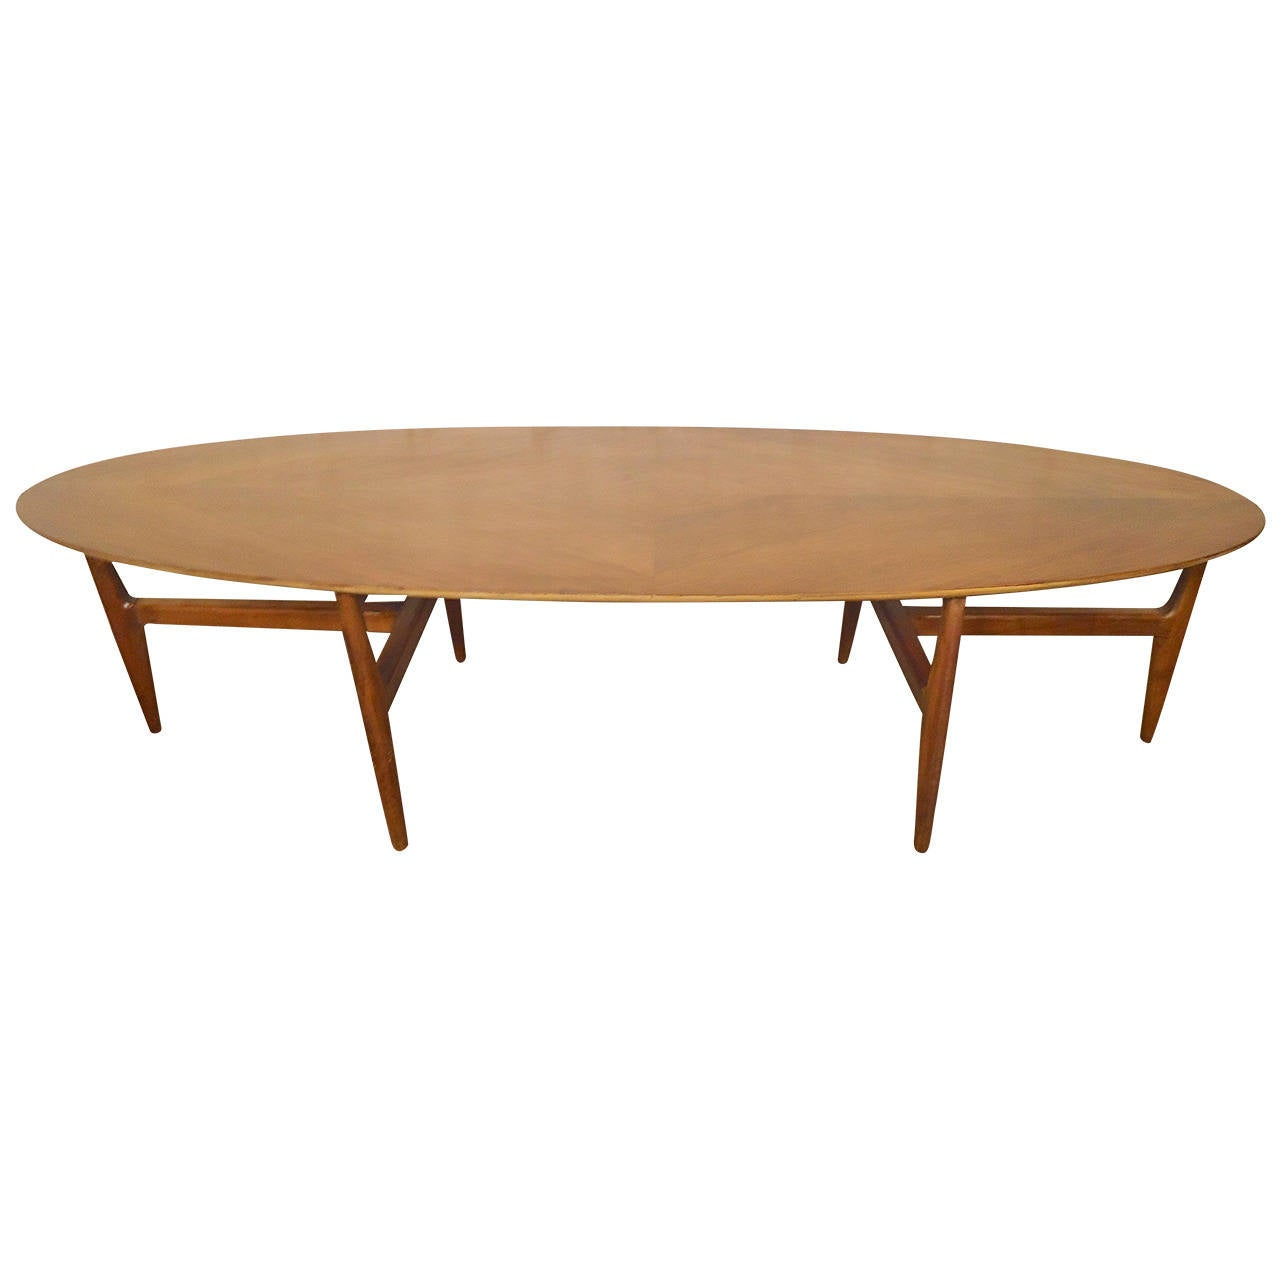 Unique oval mid century coffee table at 1stdibs for Unusual coffee tables